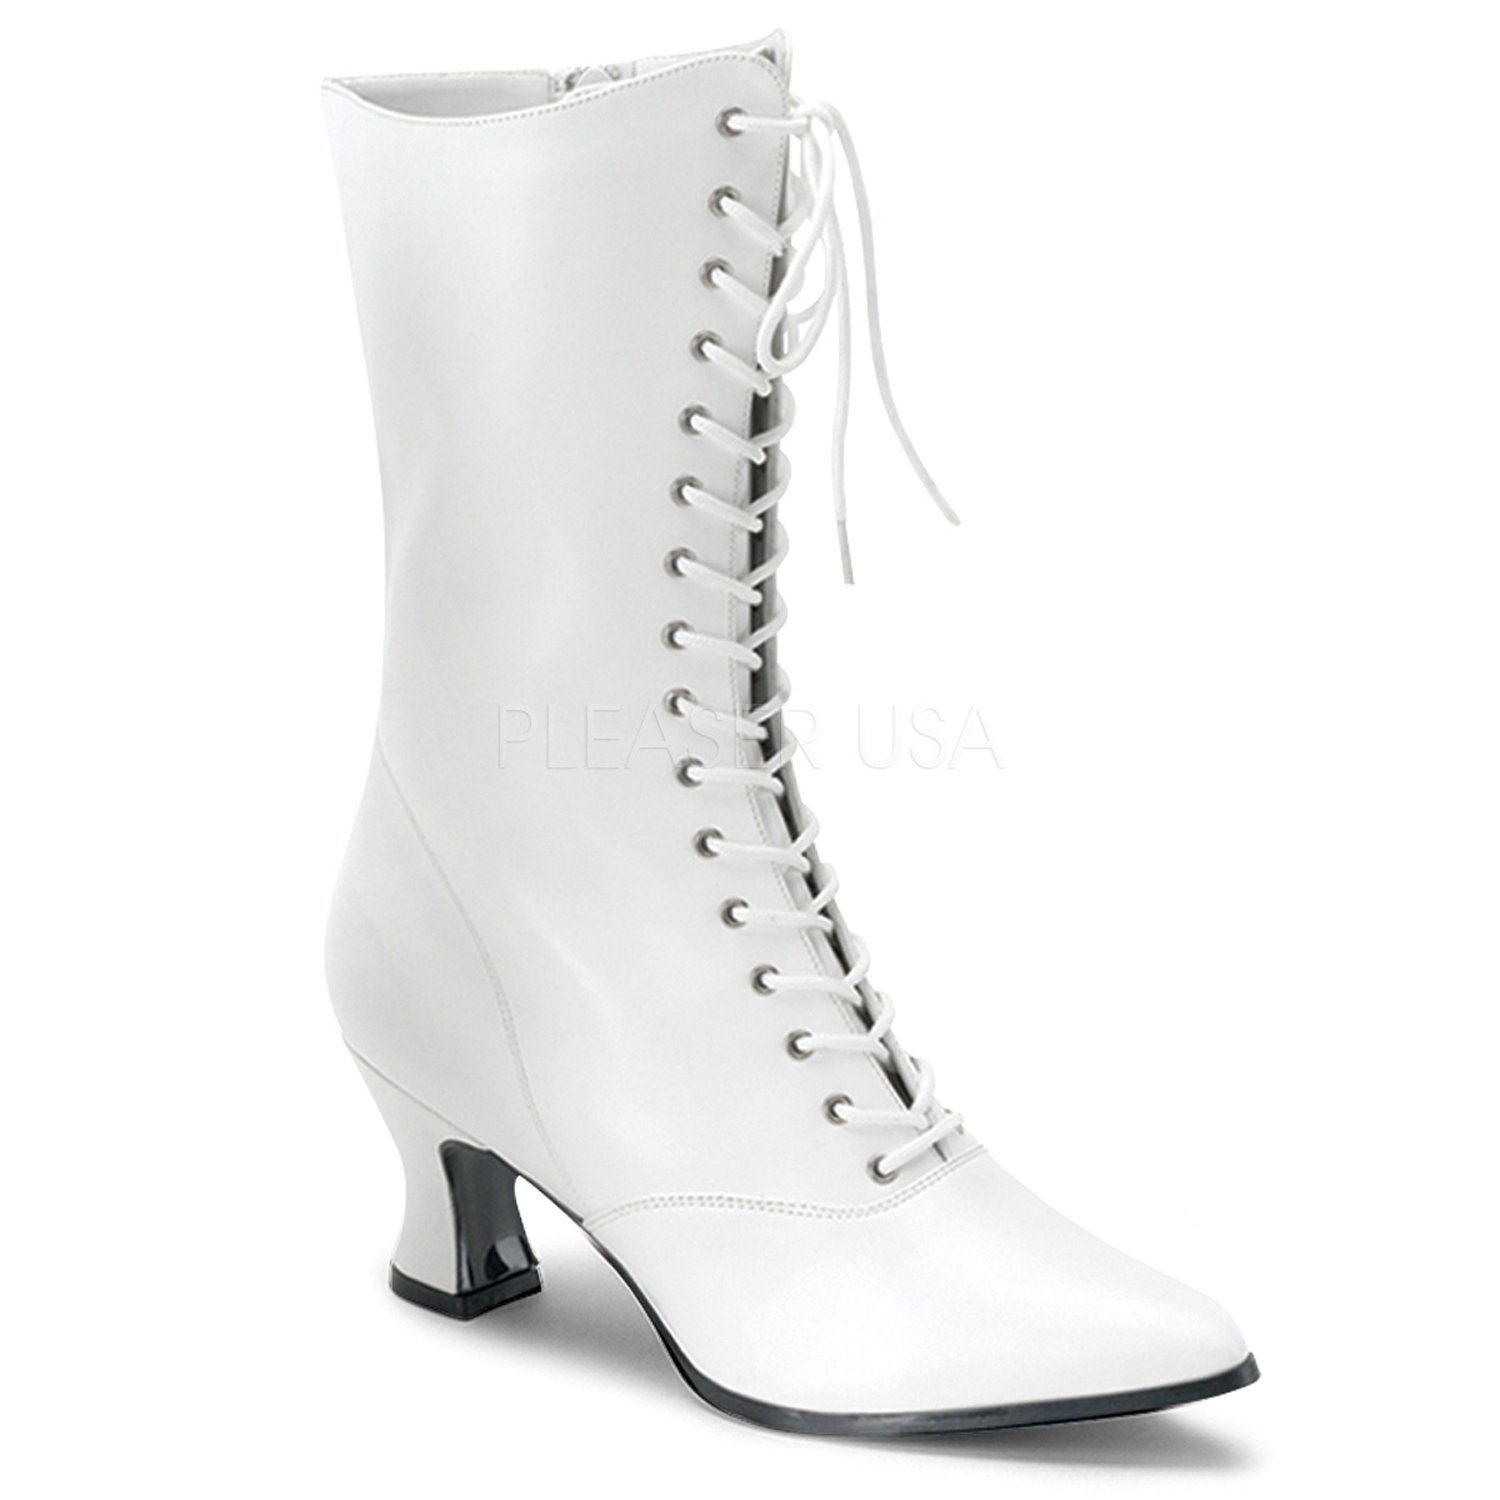 Victorian Granny Boot 2 3/4 Inch Heel w Side Zipper 120 B00NHTLK64 8 B(M) US|White